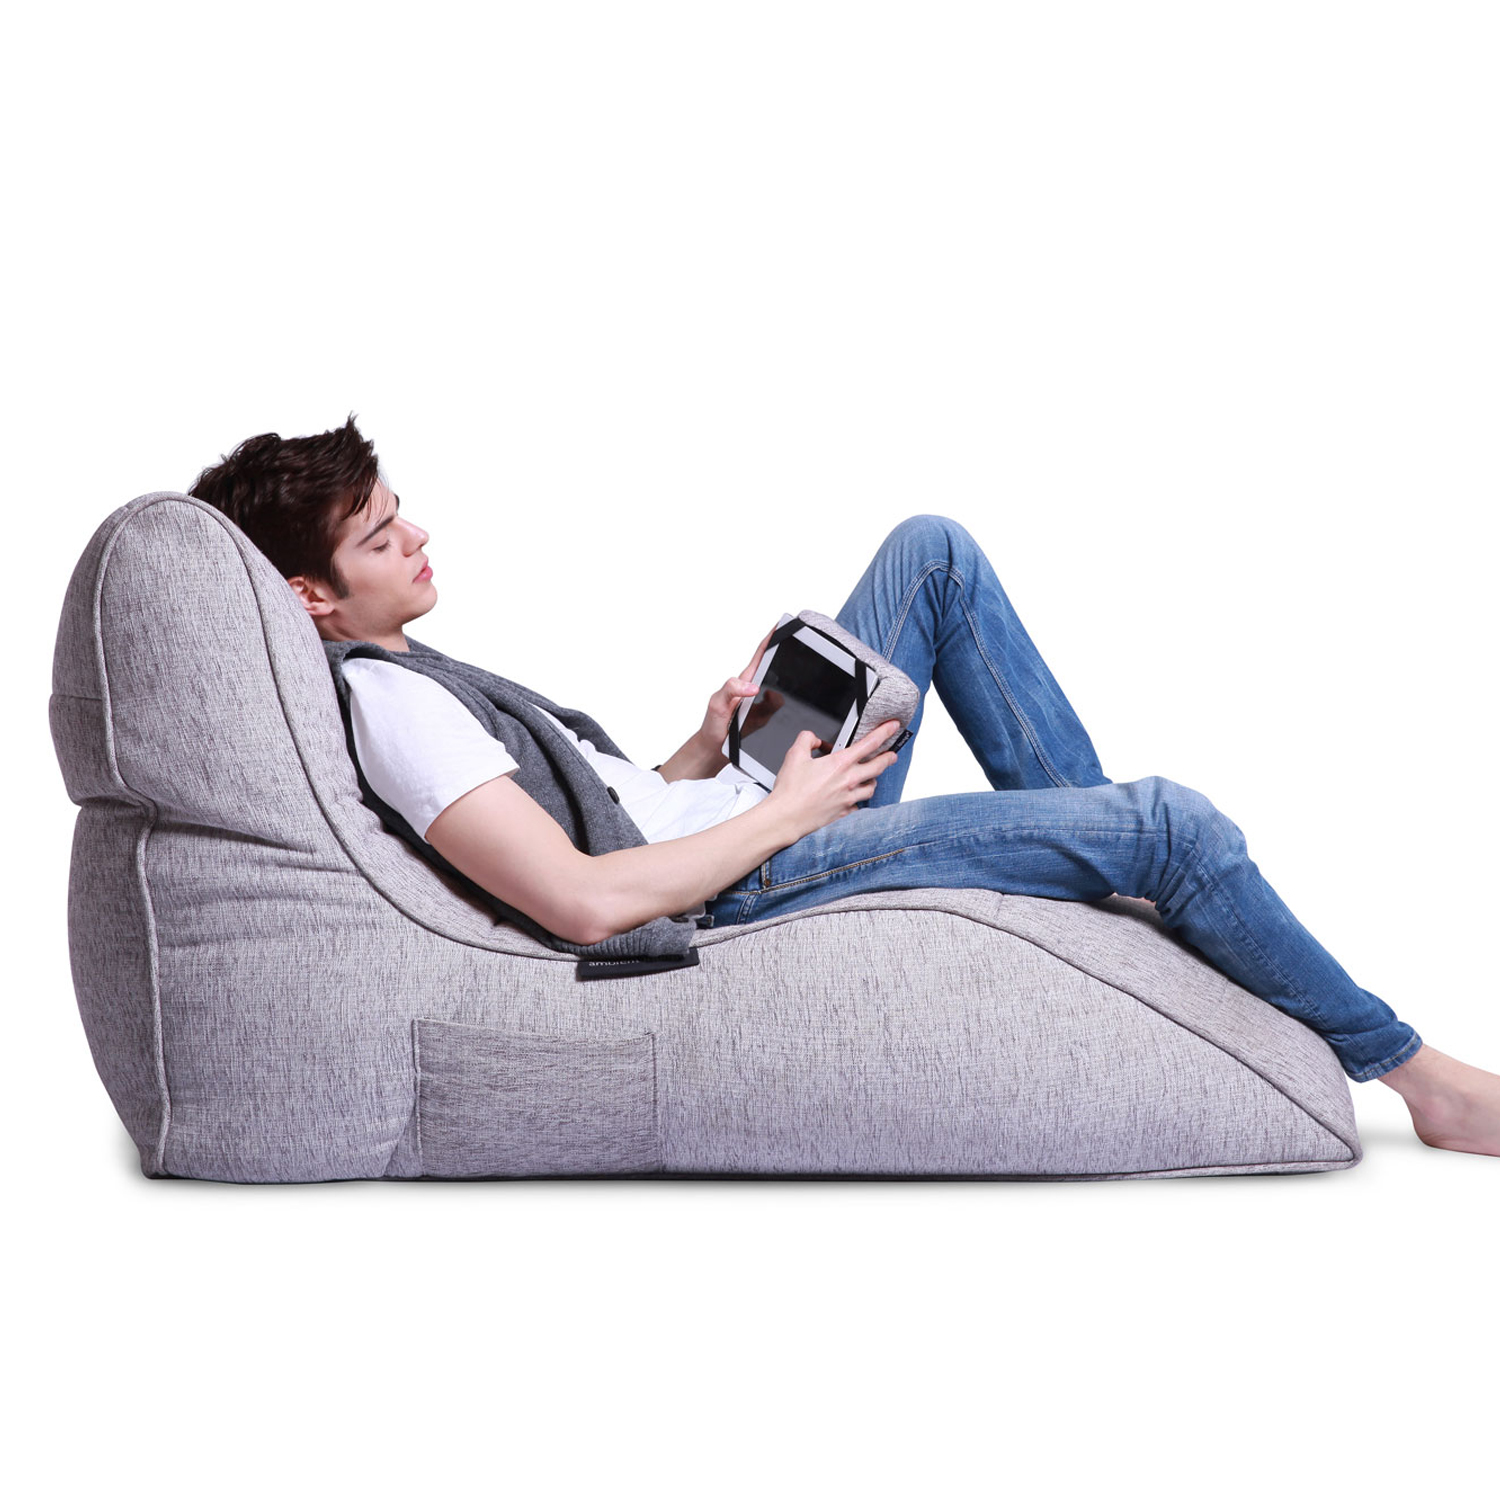 Home Cinema Indoor Bean Bag Avatar Lounge Tundra Spring